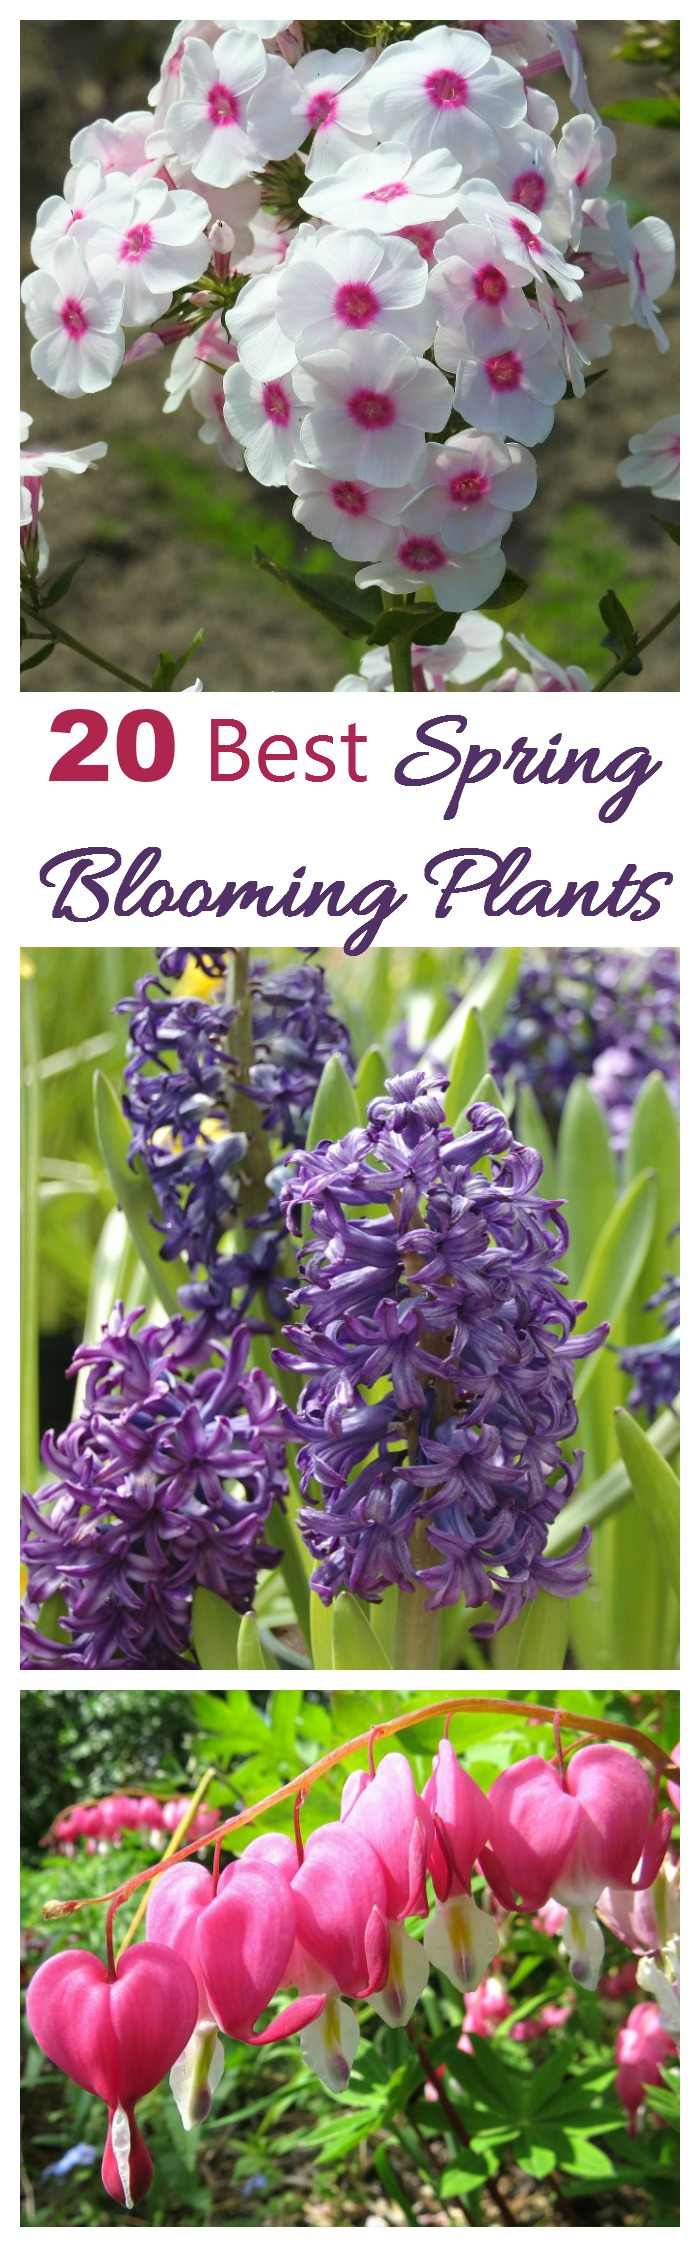 Spring blooming plants my 20 top picks for early spring flowers - Flowers that bloom from spring to fall ...